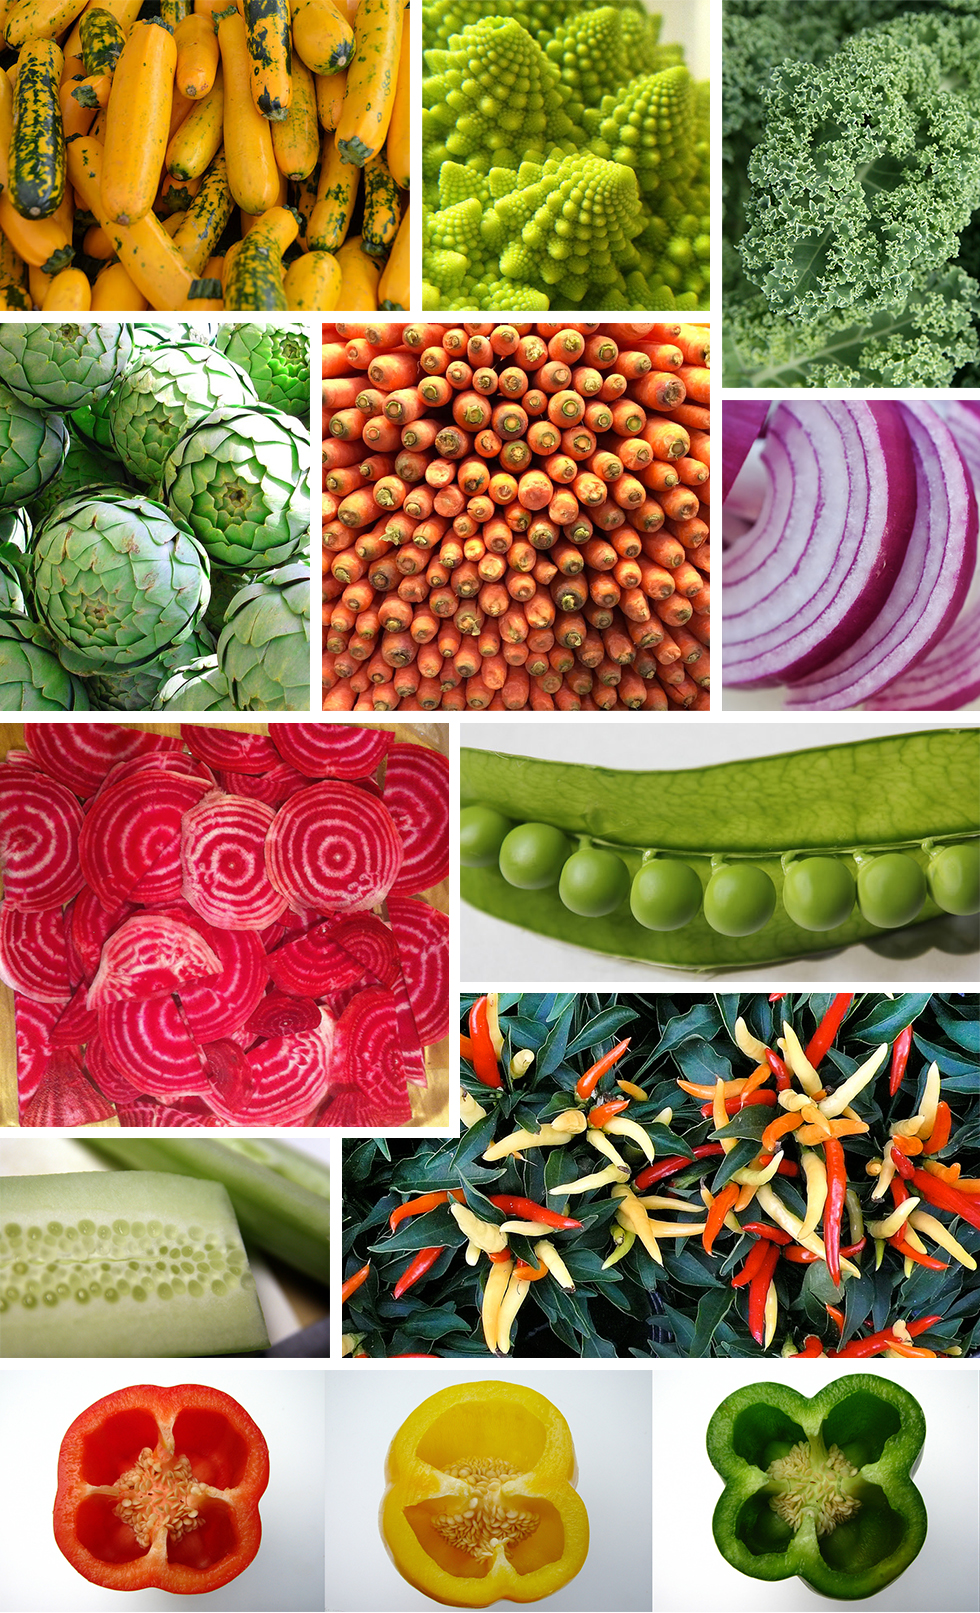 Pattern Observer Found Patterns - Vegetables https://patternobserver.com/2016/05/18/found-patterns-vegetables/ ‎